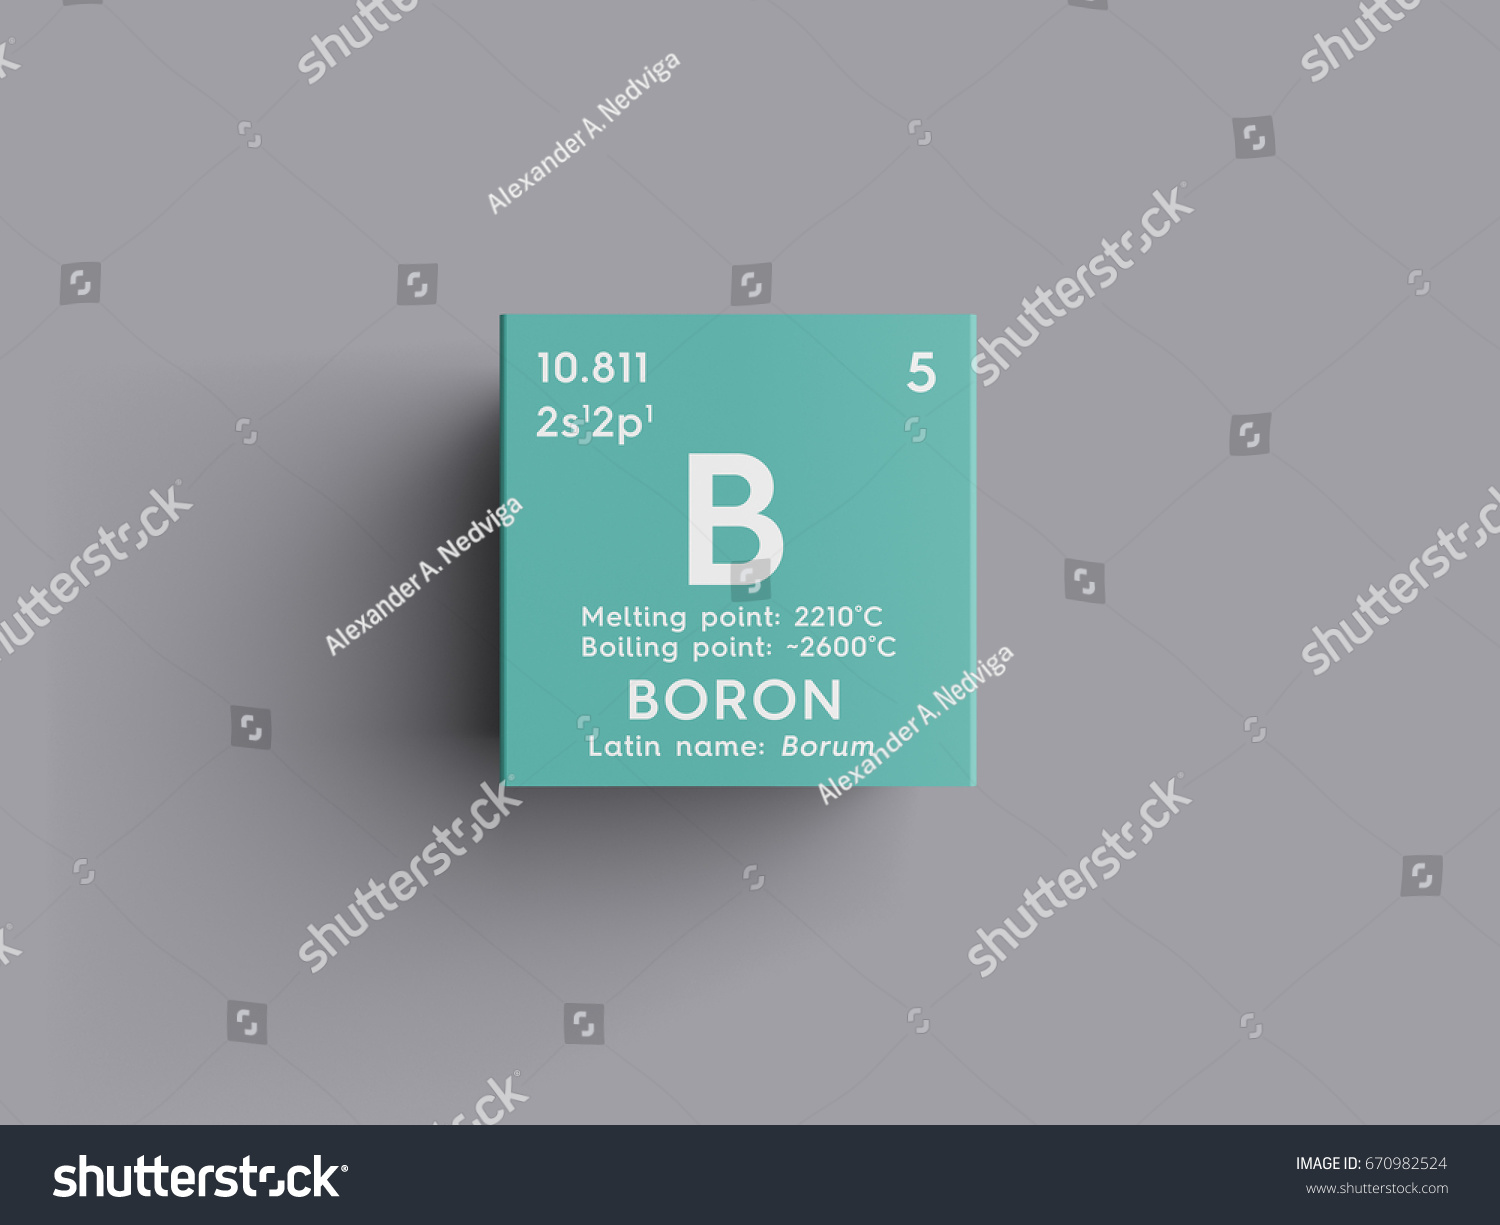 Boron in periodic table gallery periodic table images boron chemical element mendeleevs periodic table stock boron chemical element of mendeleevs periodic table boron in gamestrikefo Image collections